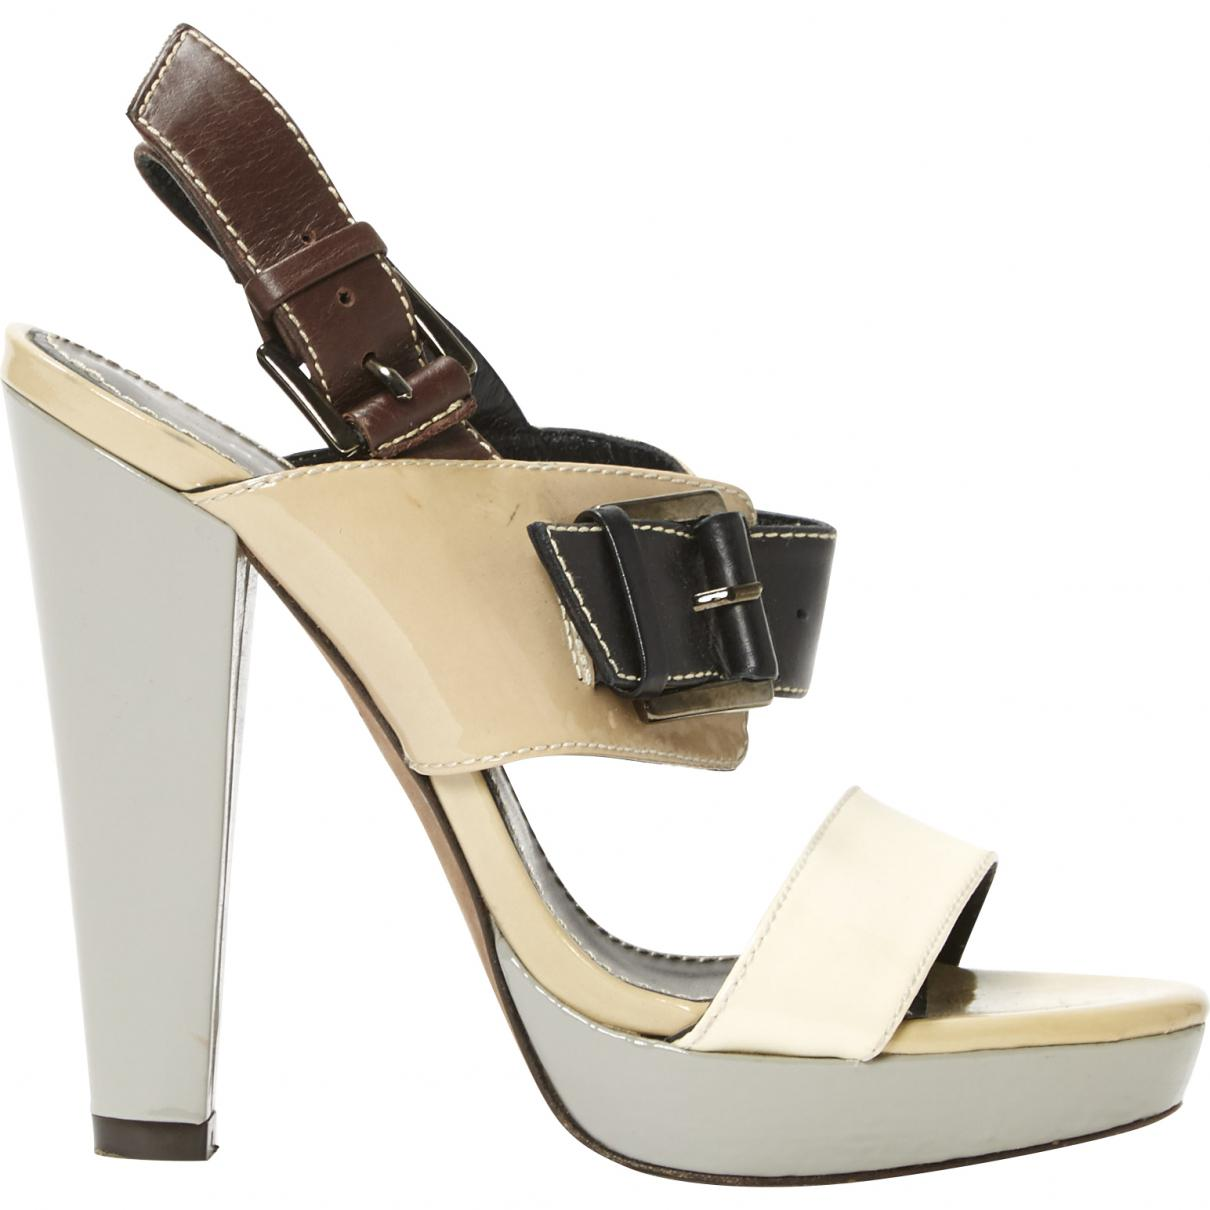 Pre-owned - Patent leather sandals Barbara Bui Good Selling For Sale Sale Cheapest Price Outlet Visit dGHOvwW